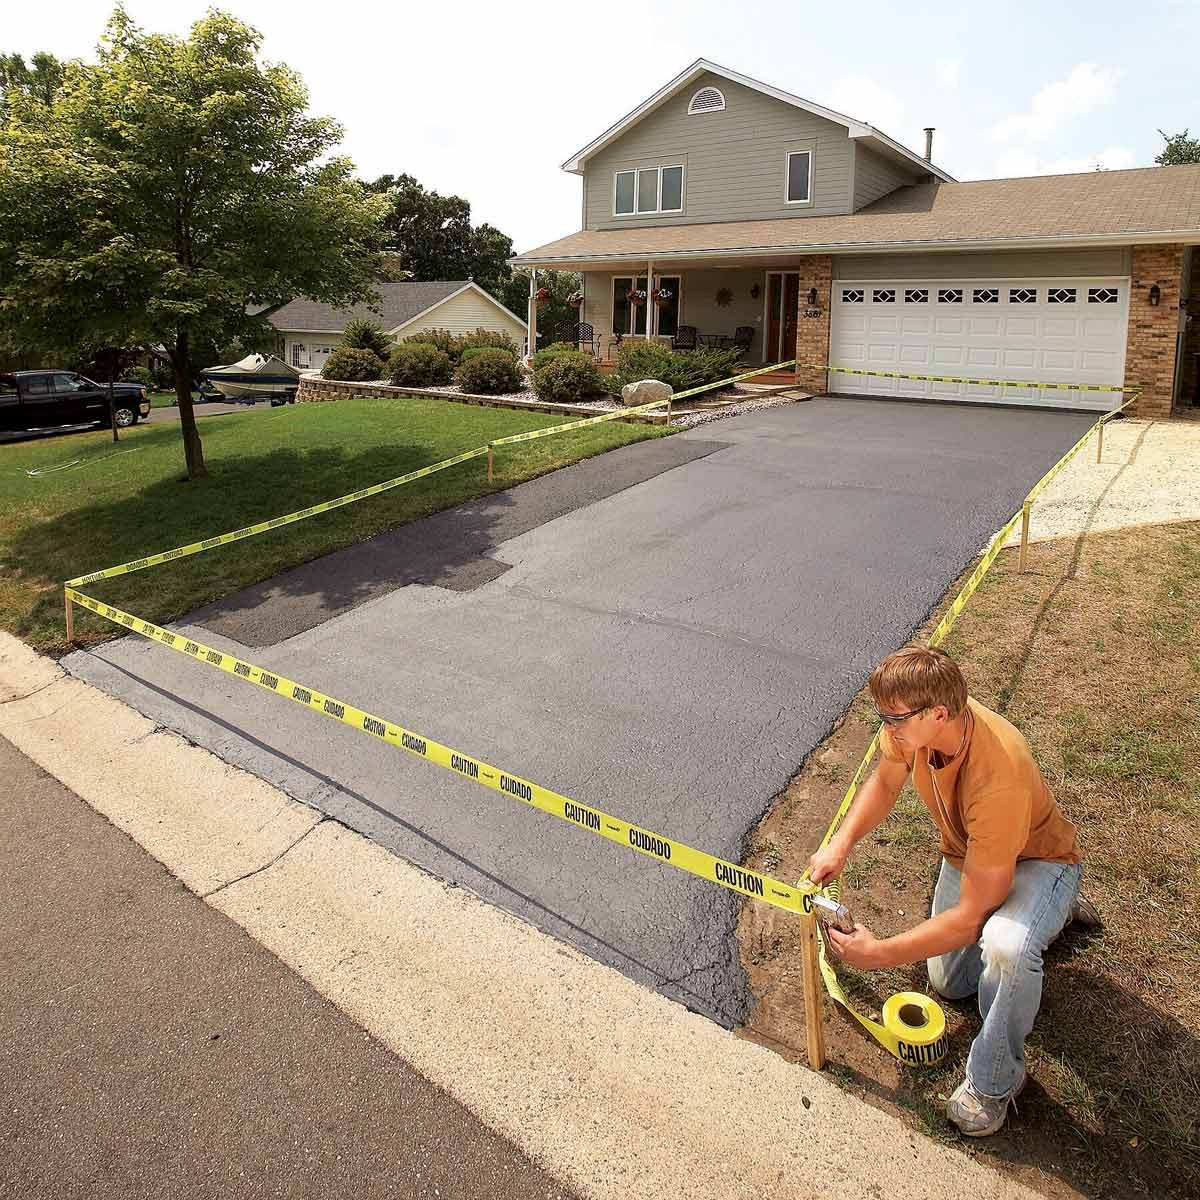 Man-kneels-to-staple-caution-tape-to-post-after-repaving-driveway